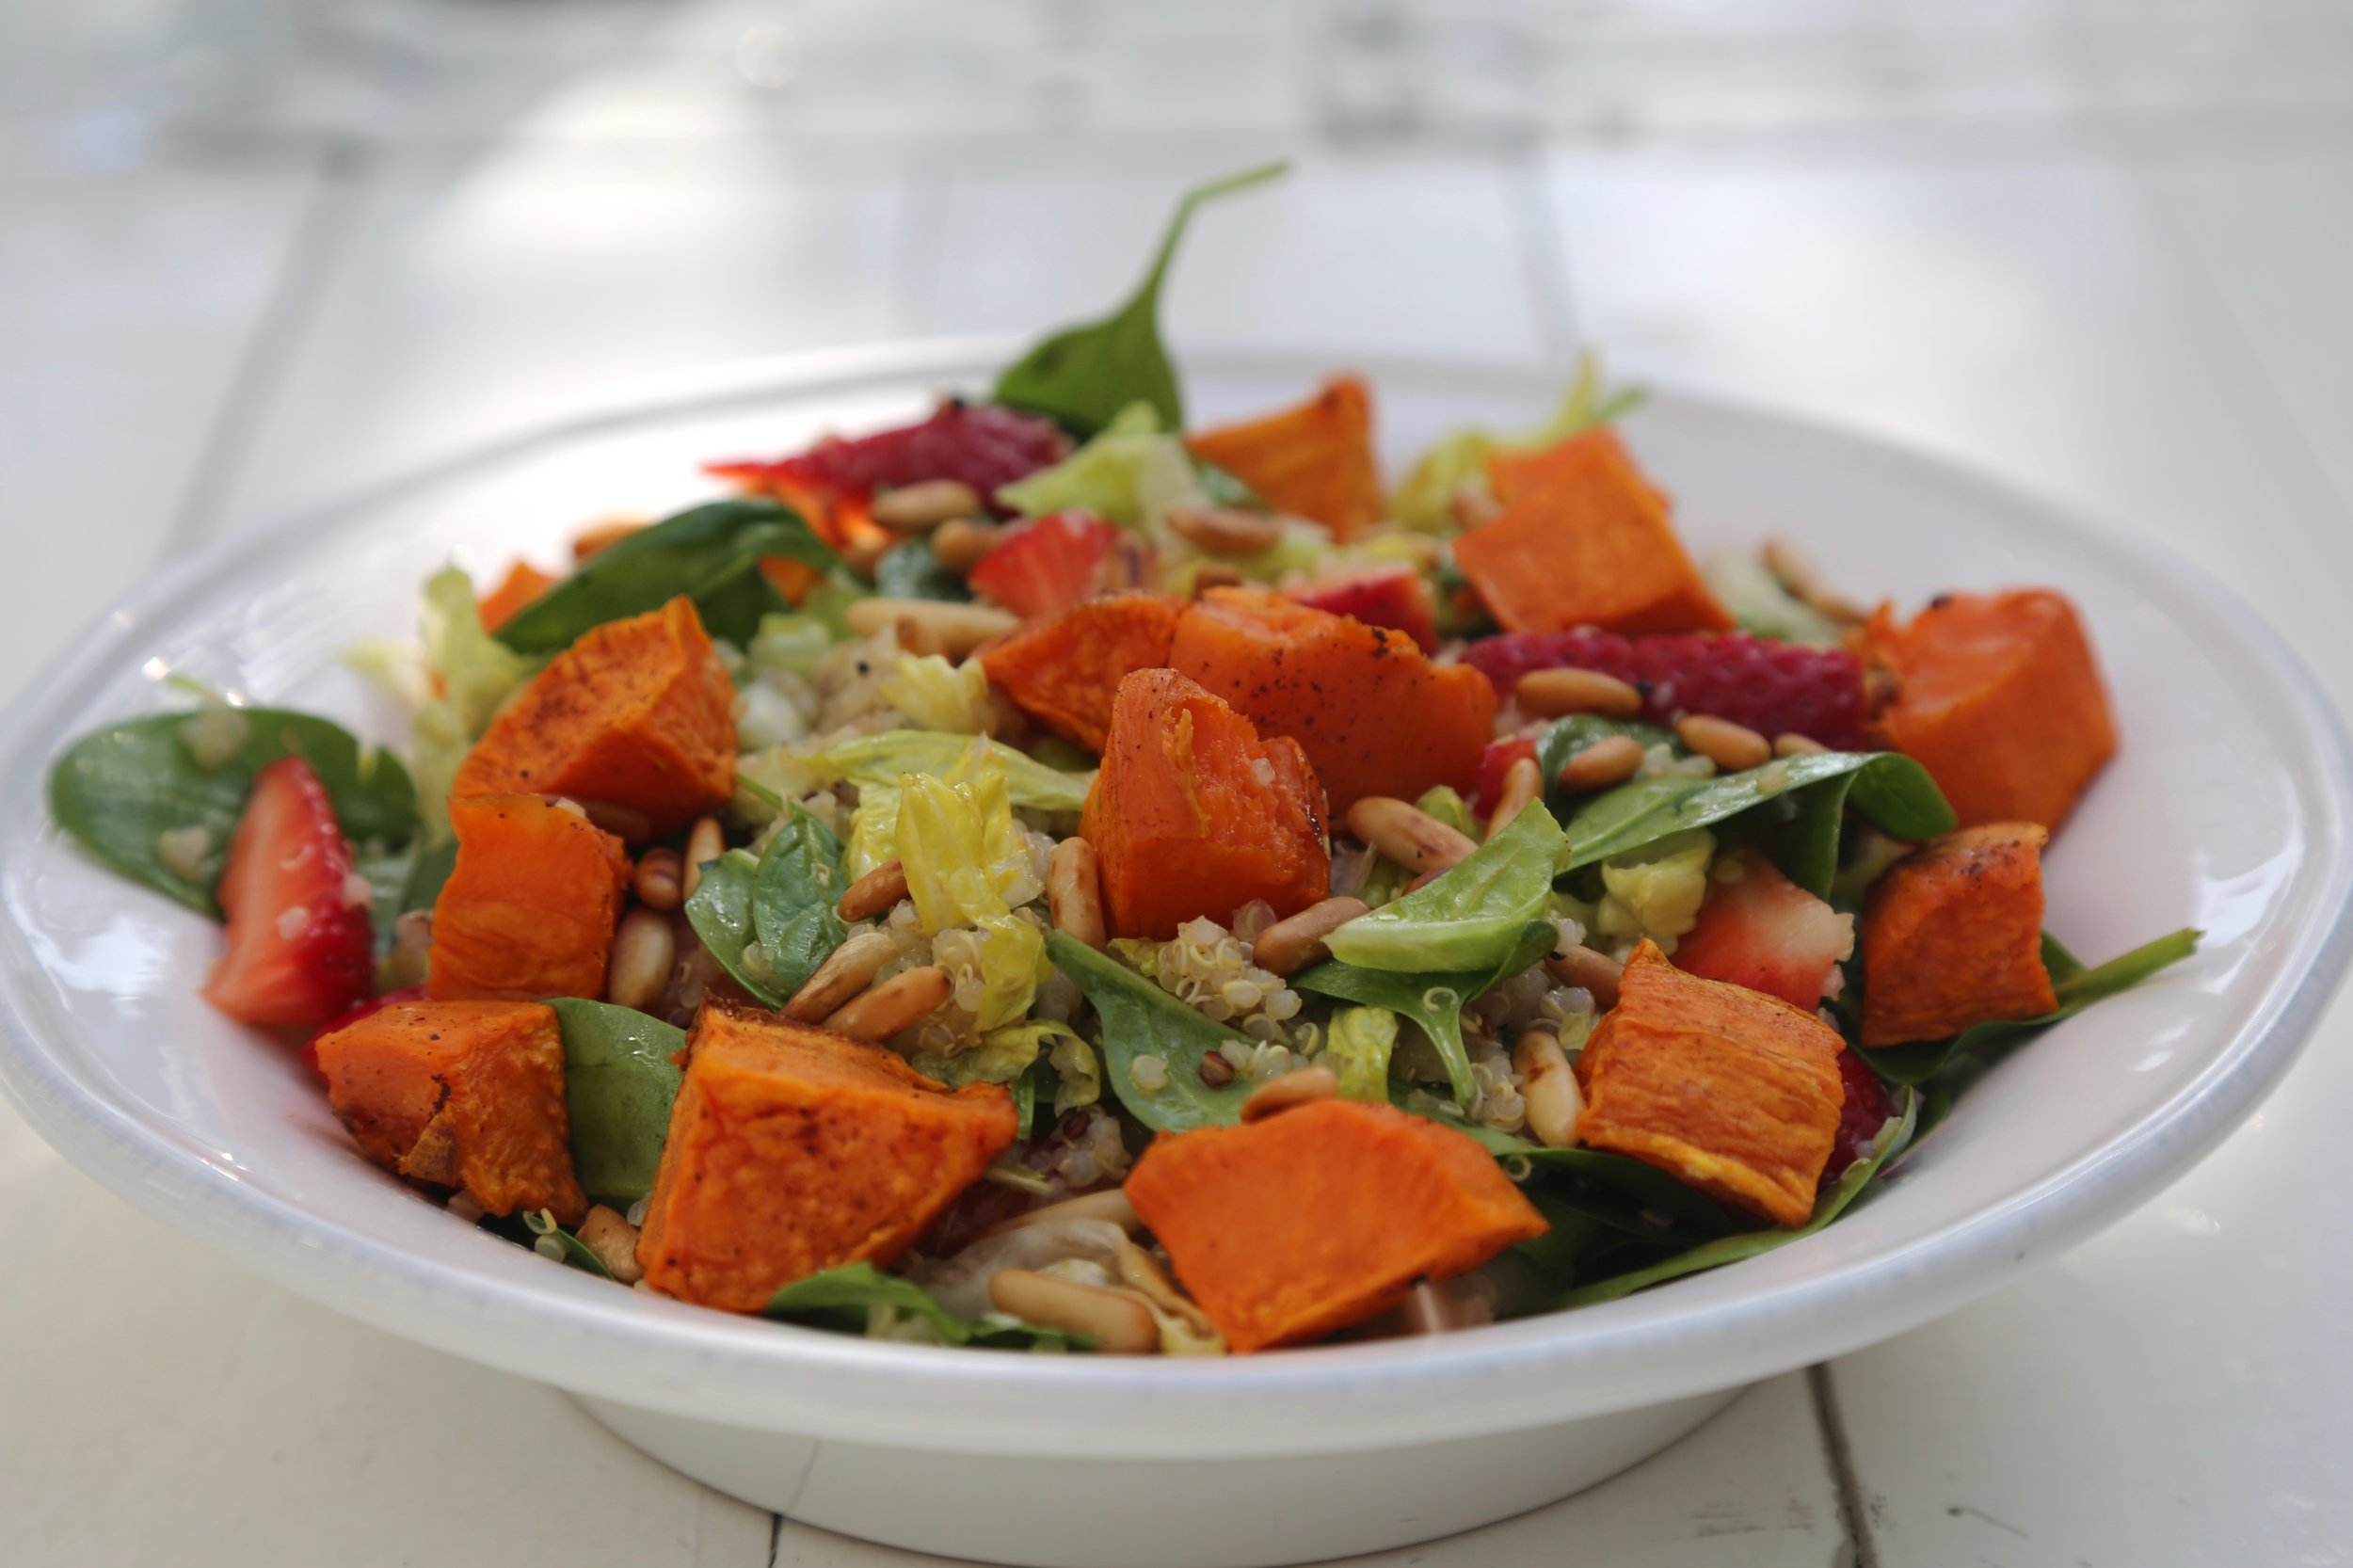 Sweet Potato & Quinoa Salad: Lettuce, spinach, sweet potato, strawberry, pine nuts with lemon dressing